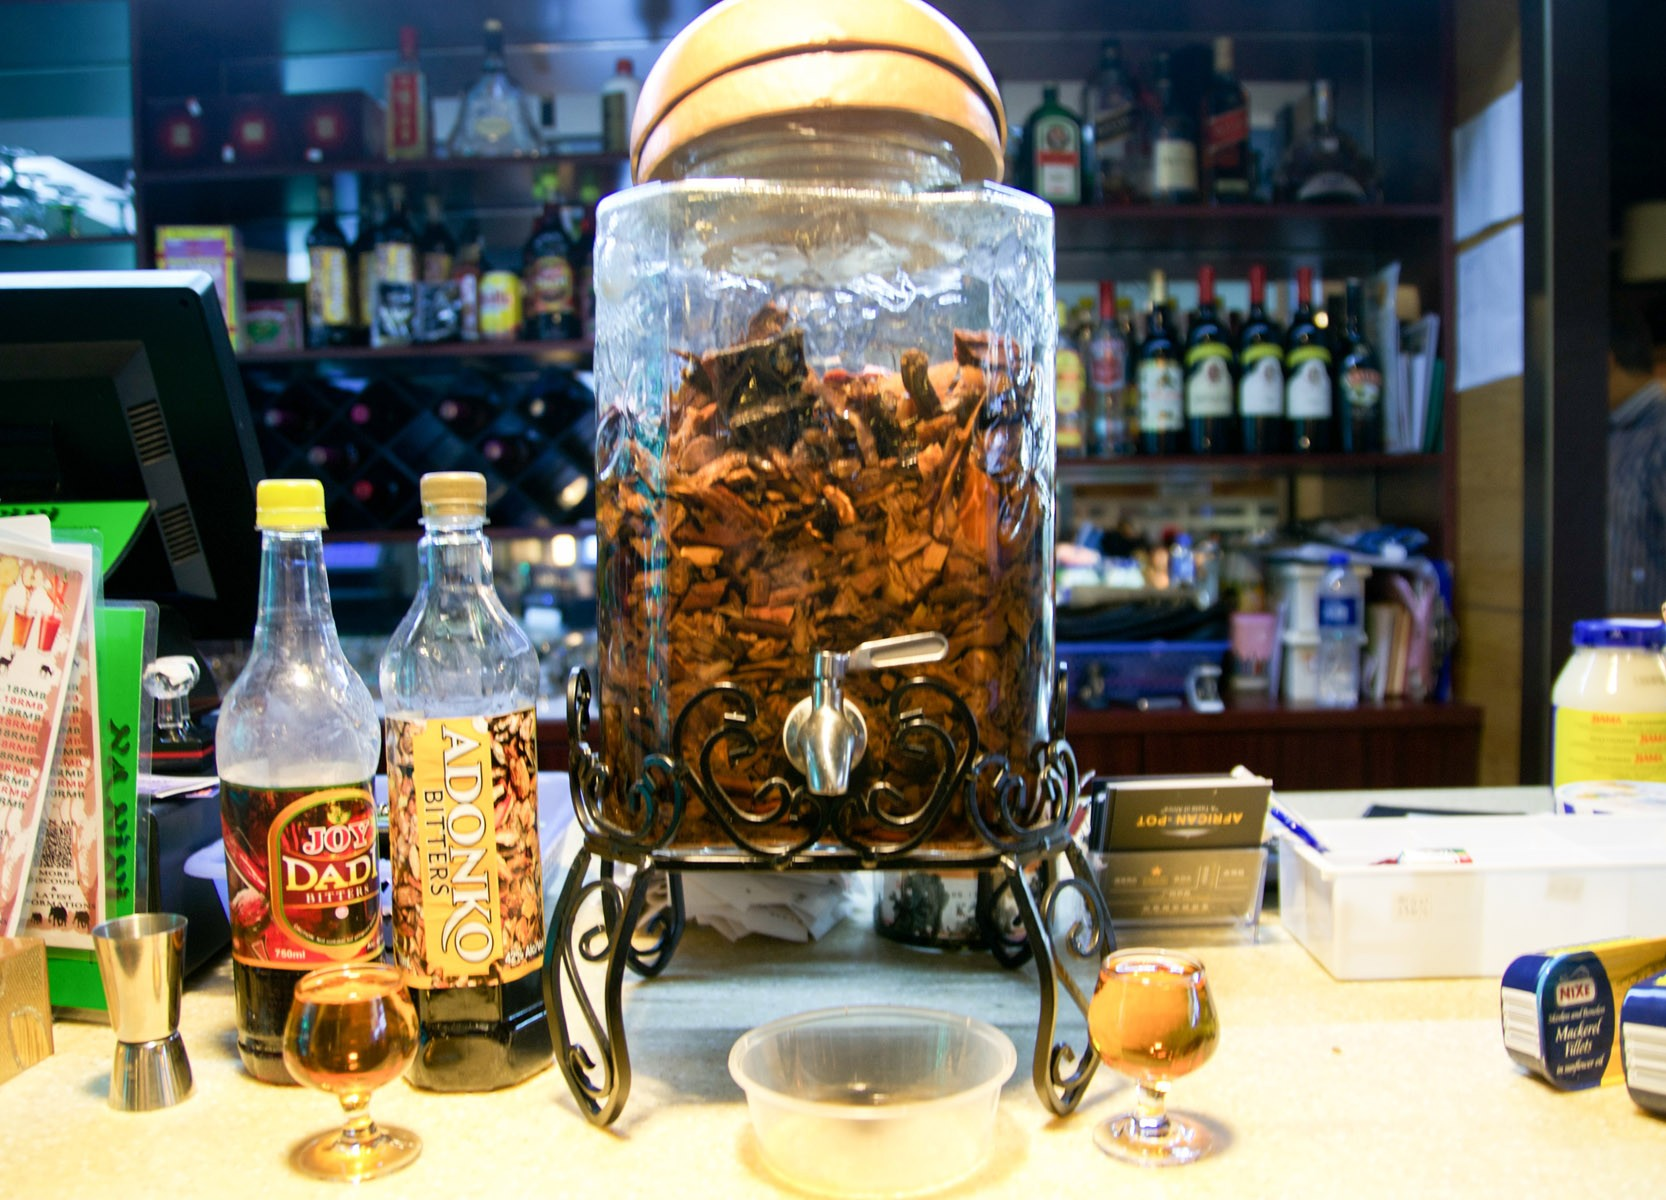 this-jar-holds-a-special-alcohol-elixir-offered-to-guests-photo-by-kait-bolongaro